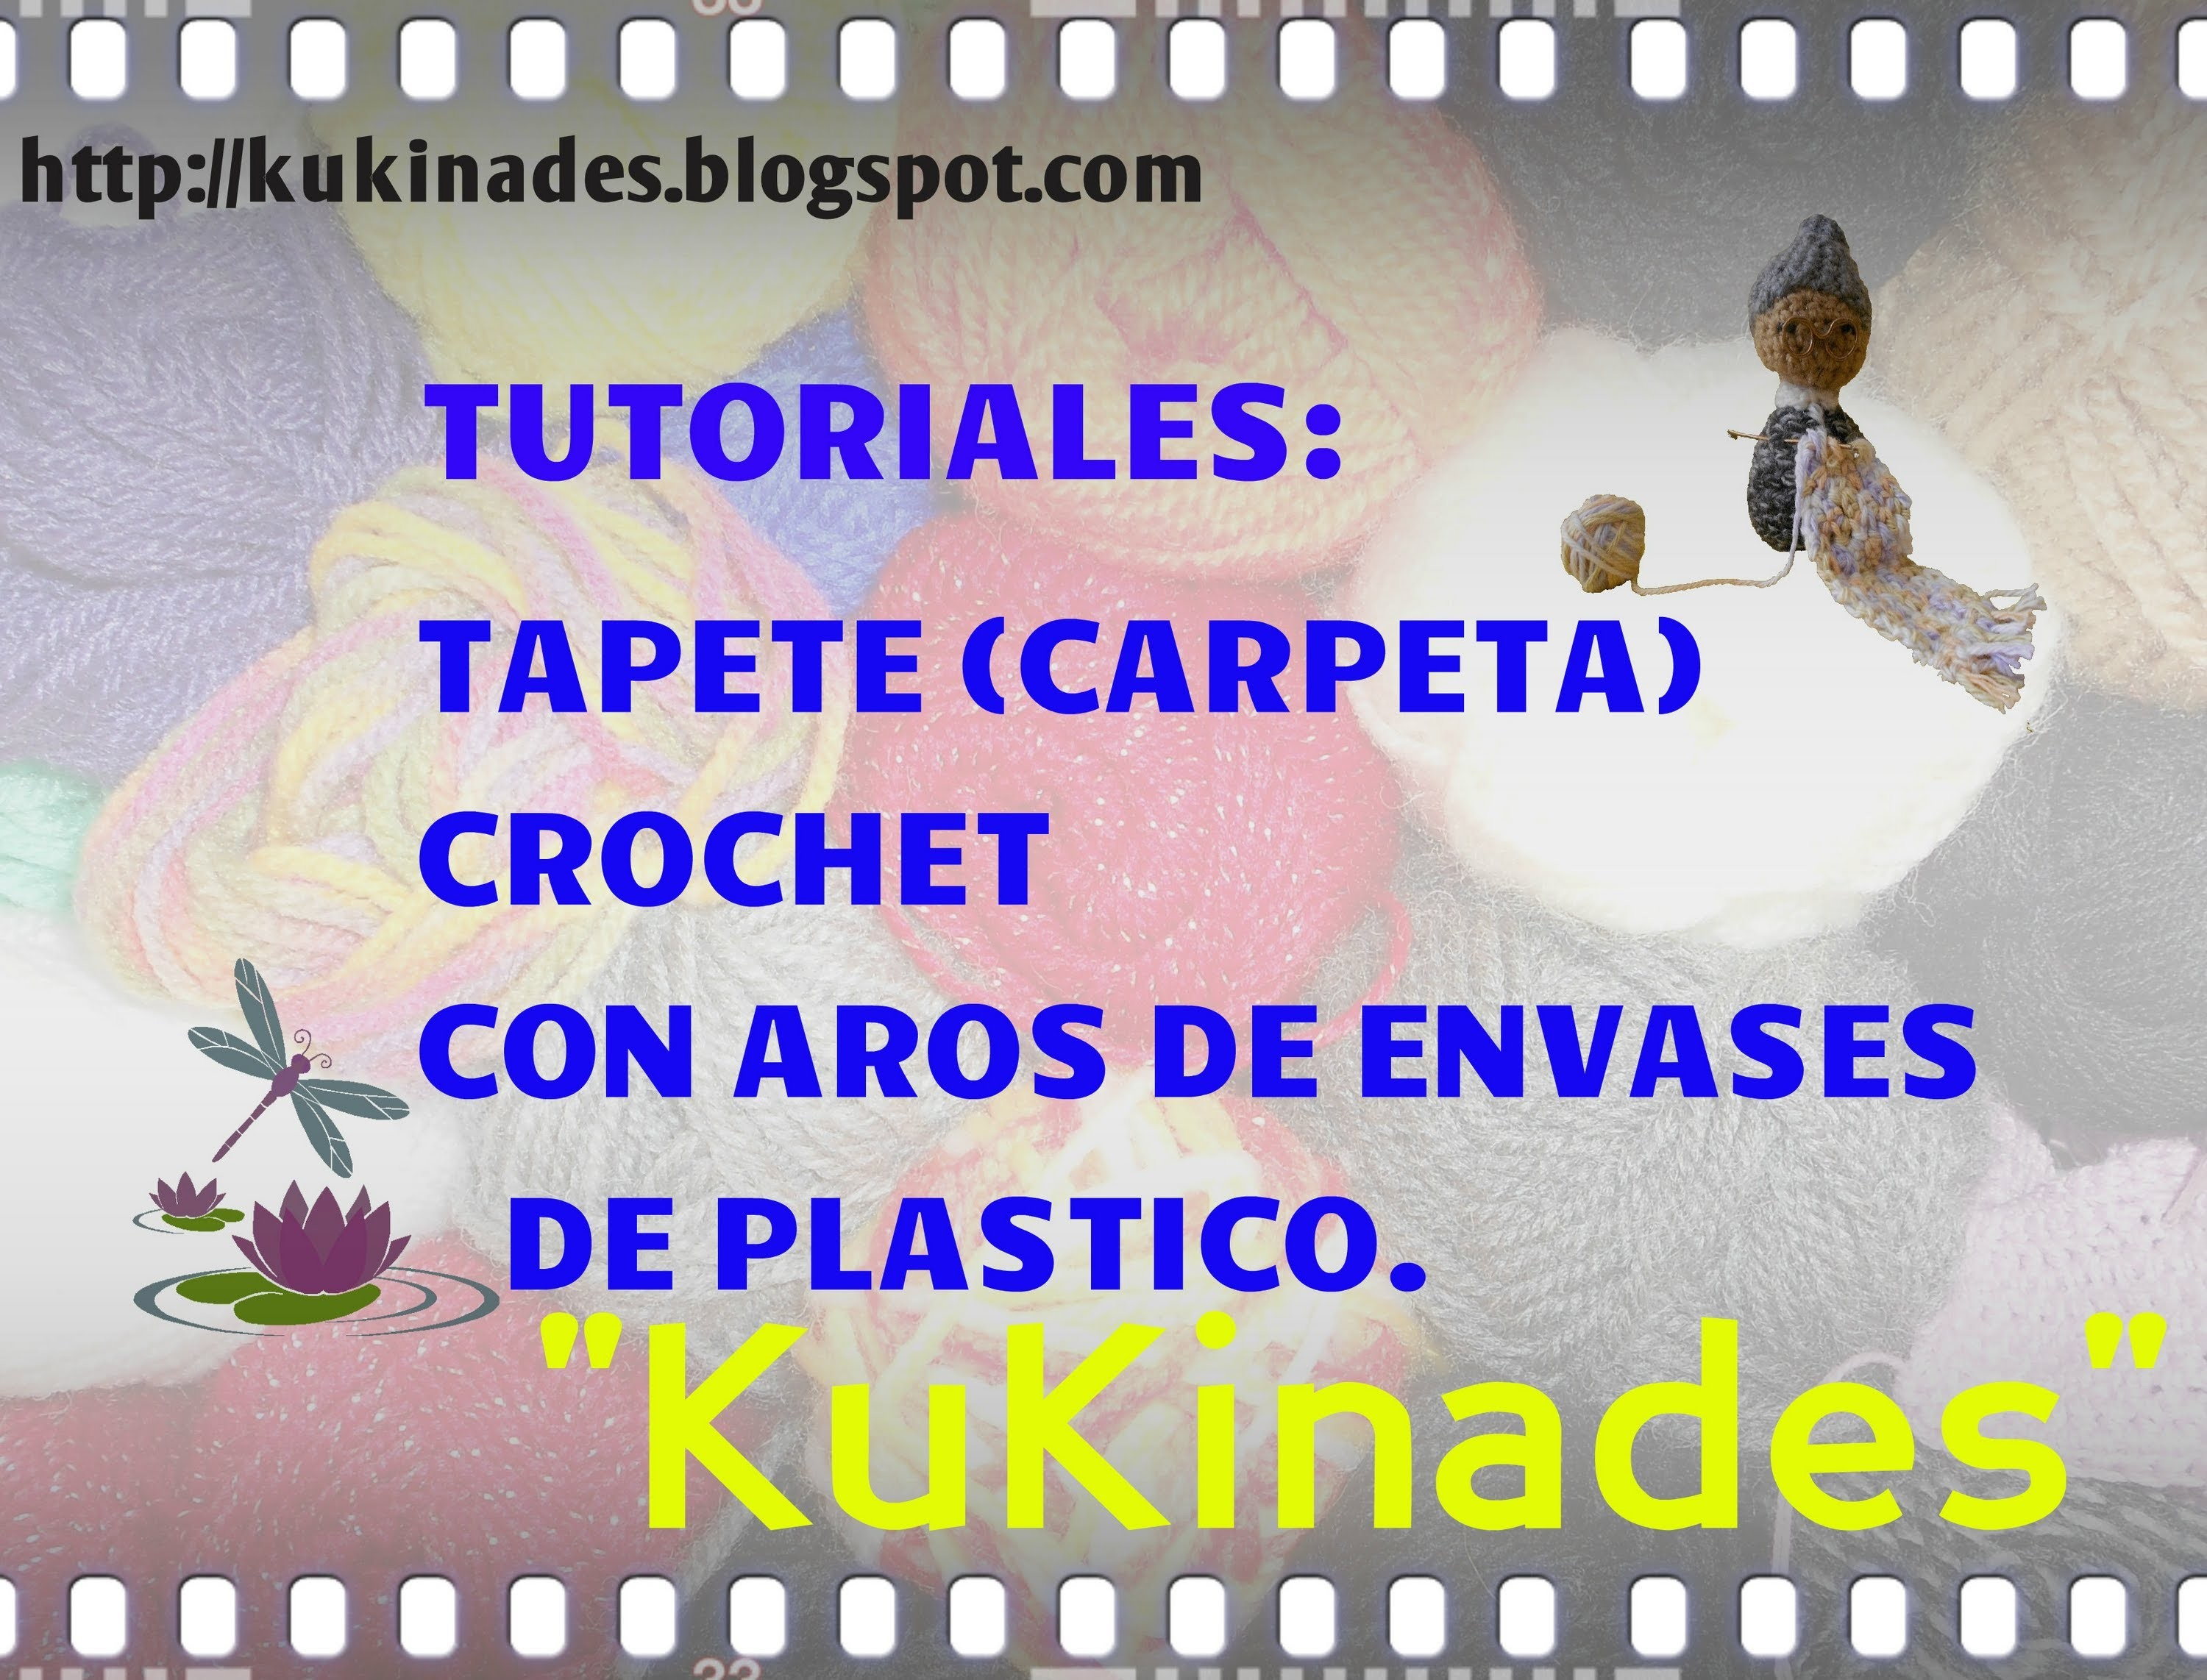 TUTORIAL. TAPETE (CARPETA) CROCHET, CON AROS RECICLADOS.